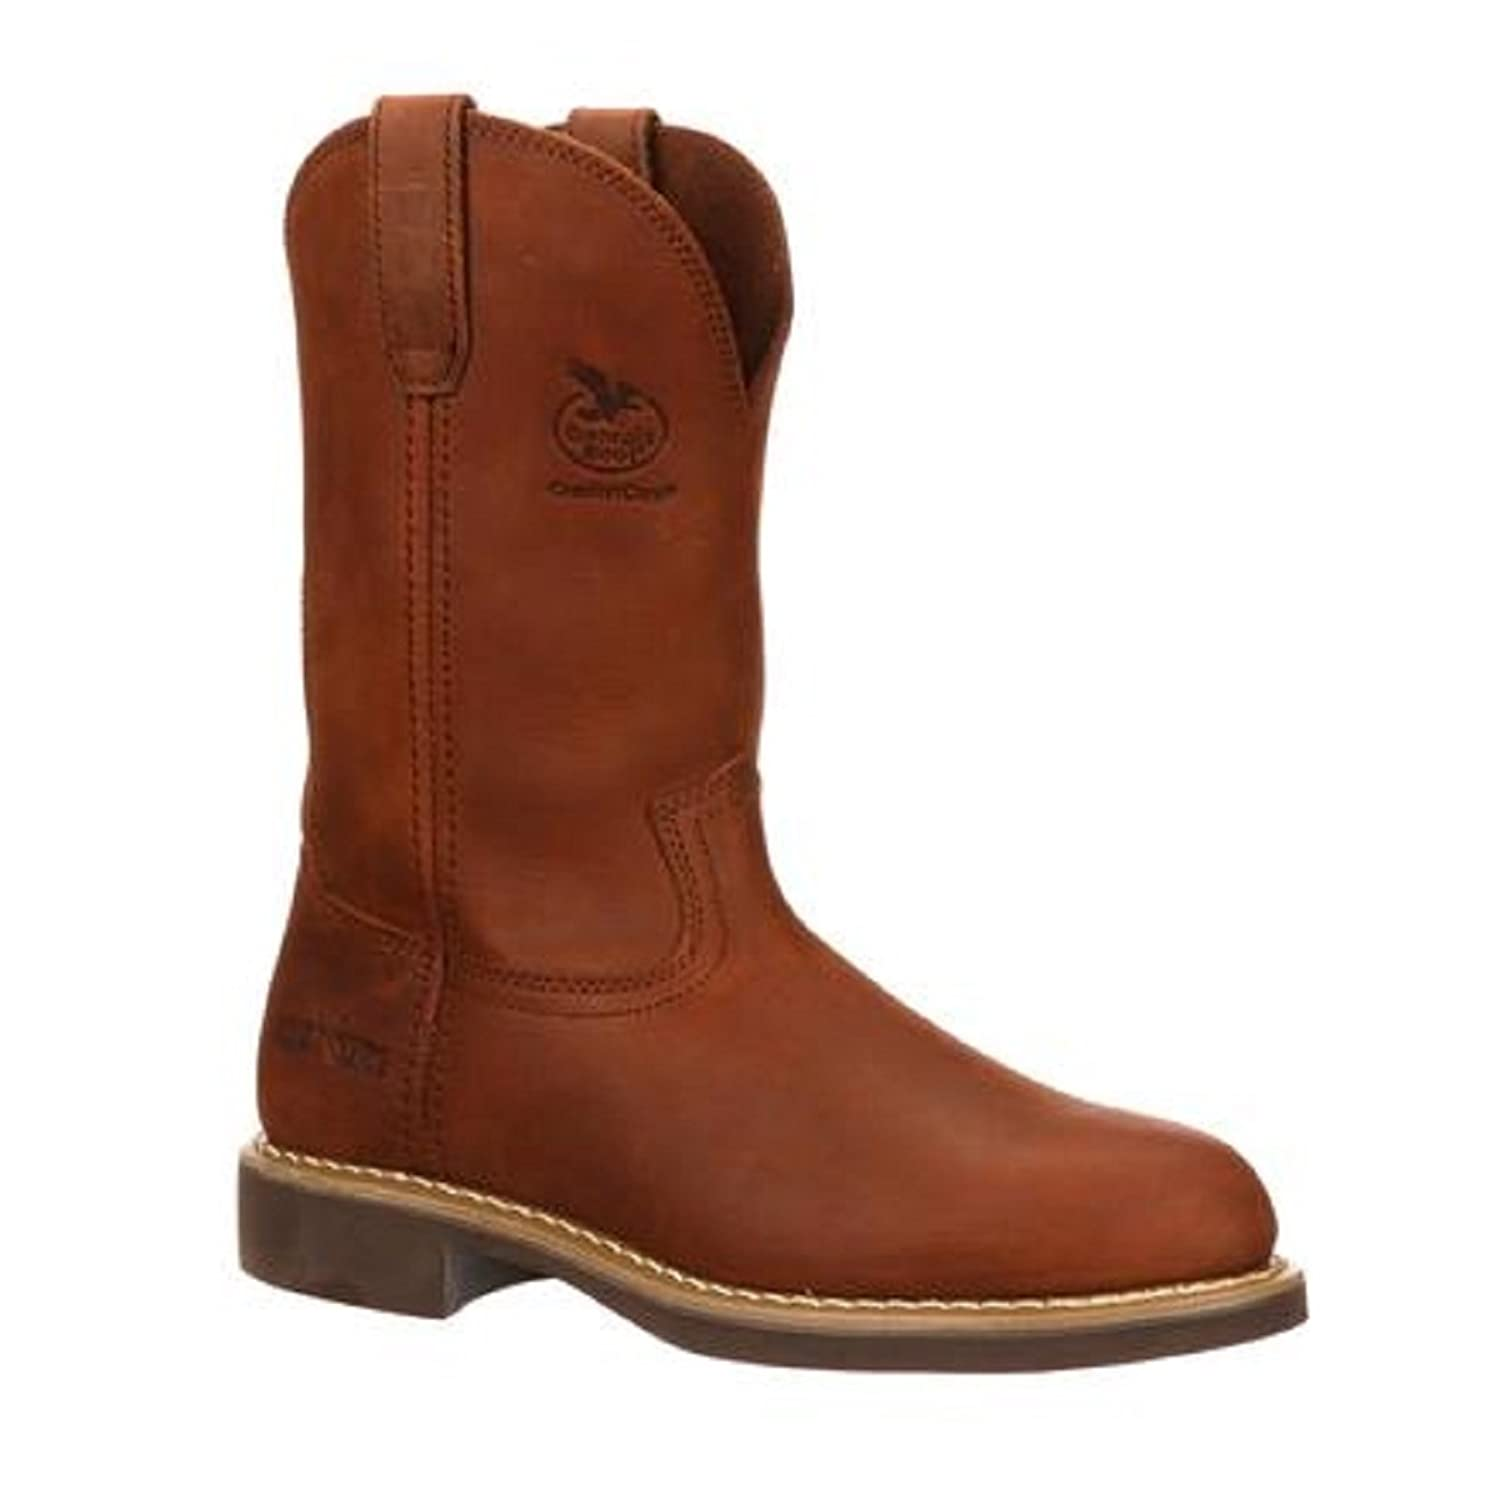 "11"" Men's Georgia Wellington Prairie Chestnuet Heritage, CHESTNUT, 9"